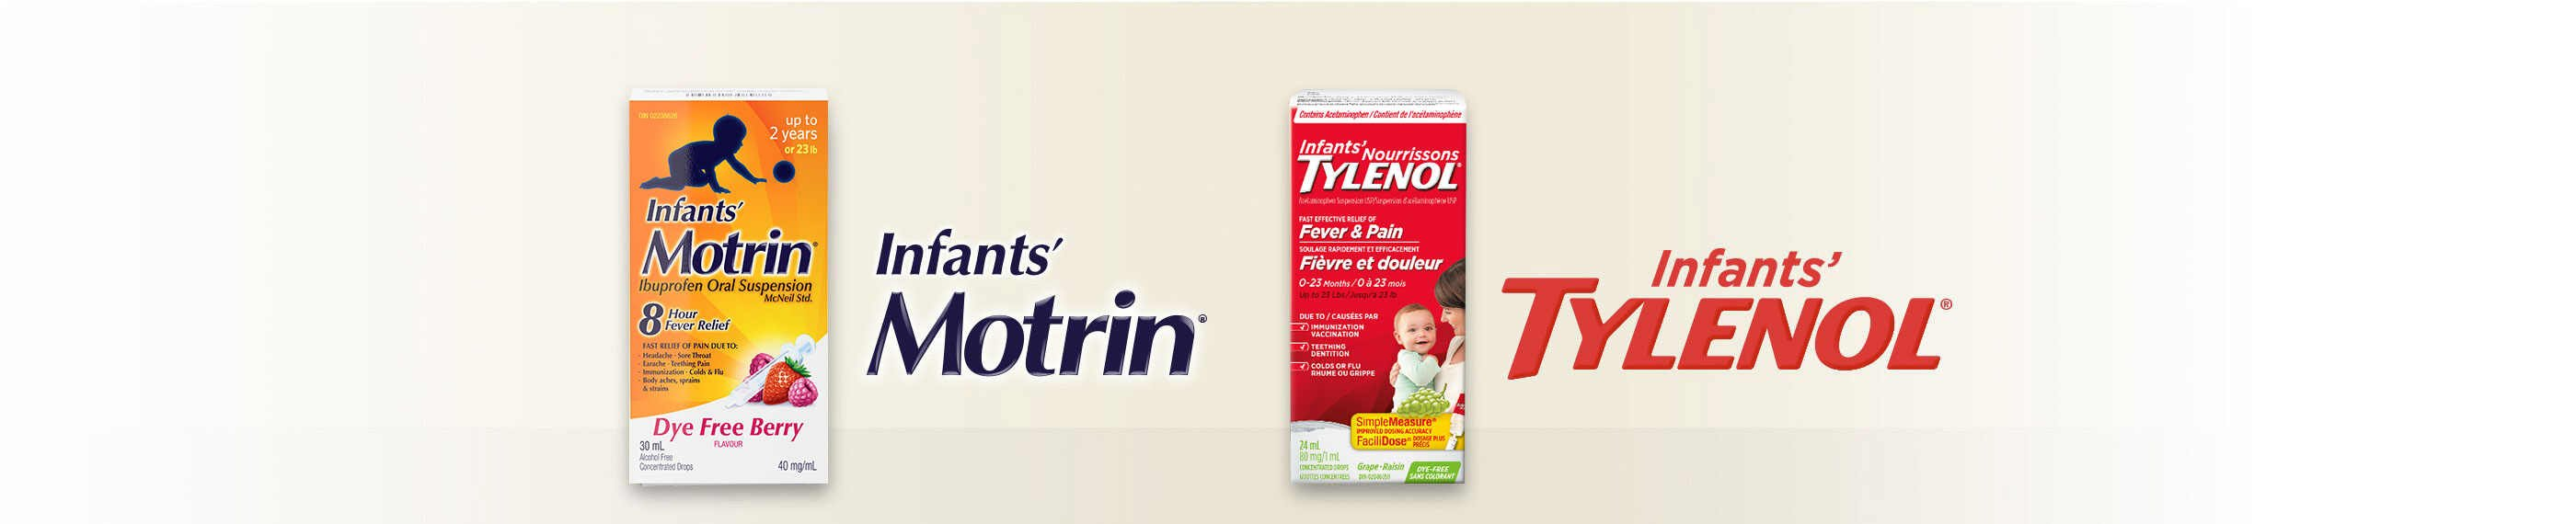 Infants' TYLENOL® or Infants' MOTRIN® products